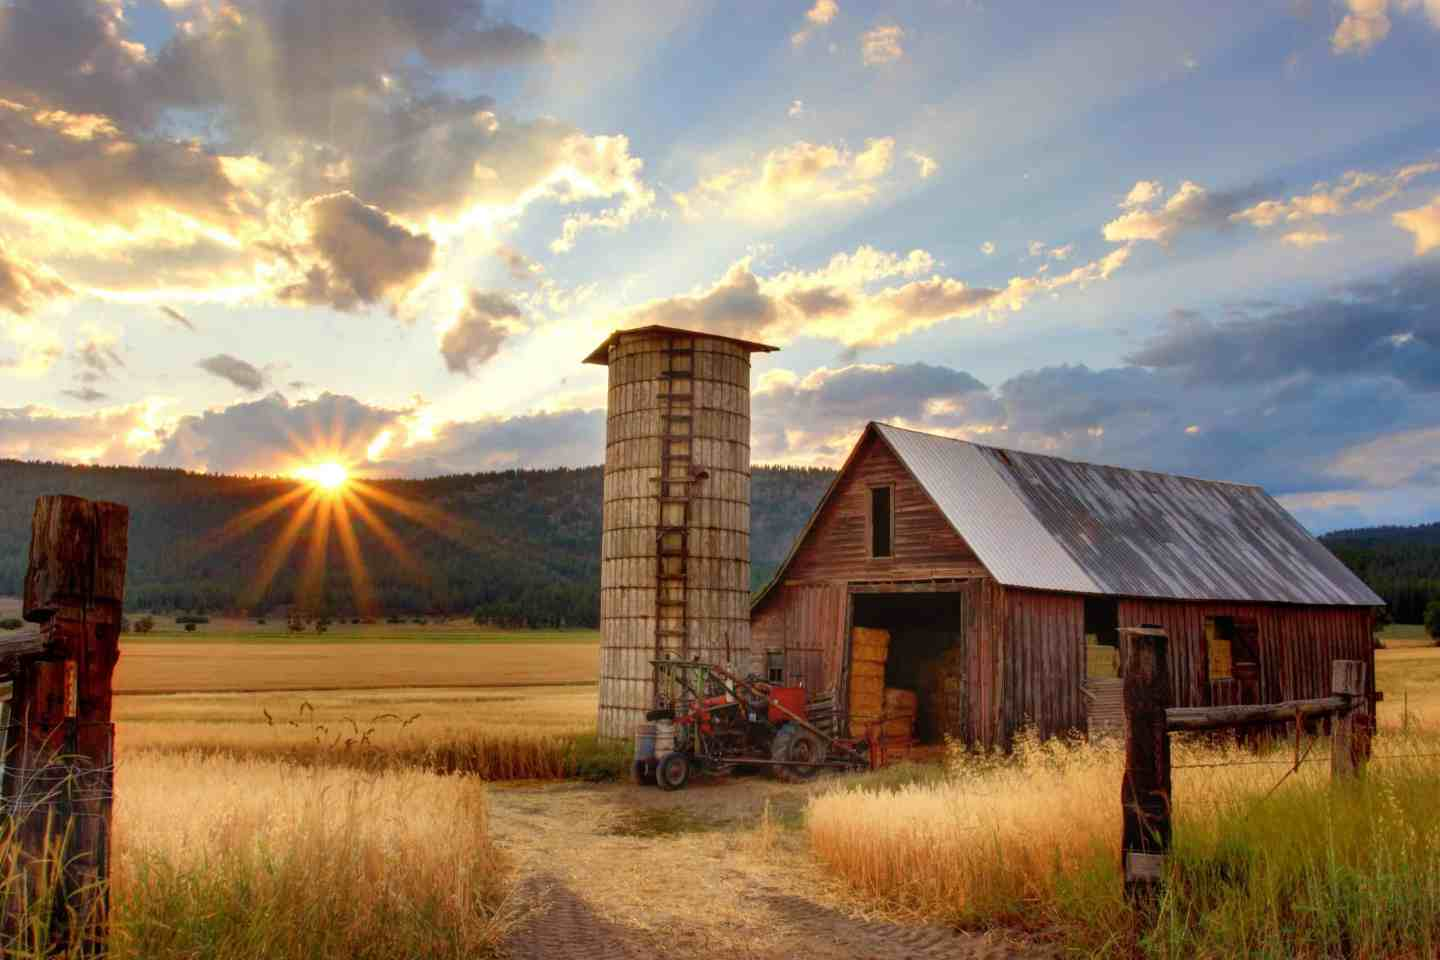 Old farm house with sun setting over the mountain